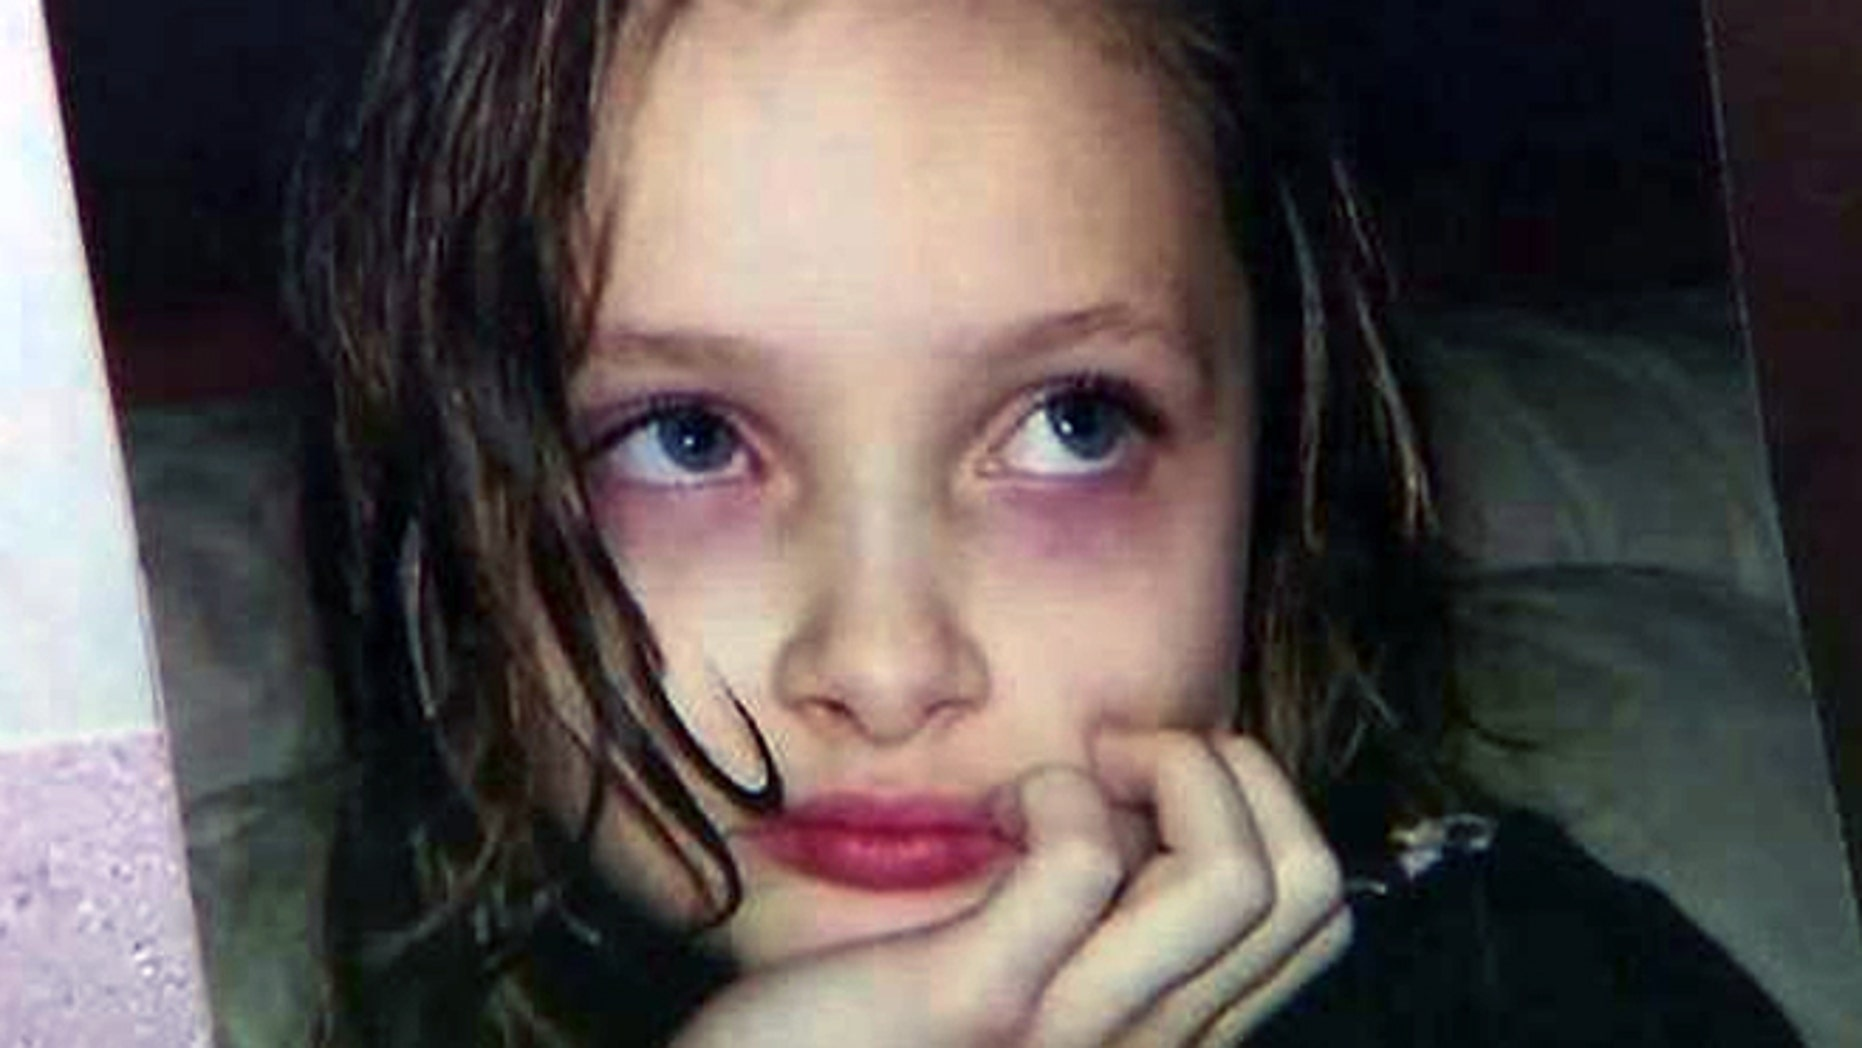 Amber Caudel was the victim of relentless bullying, her father says.